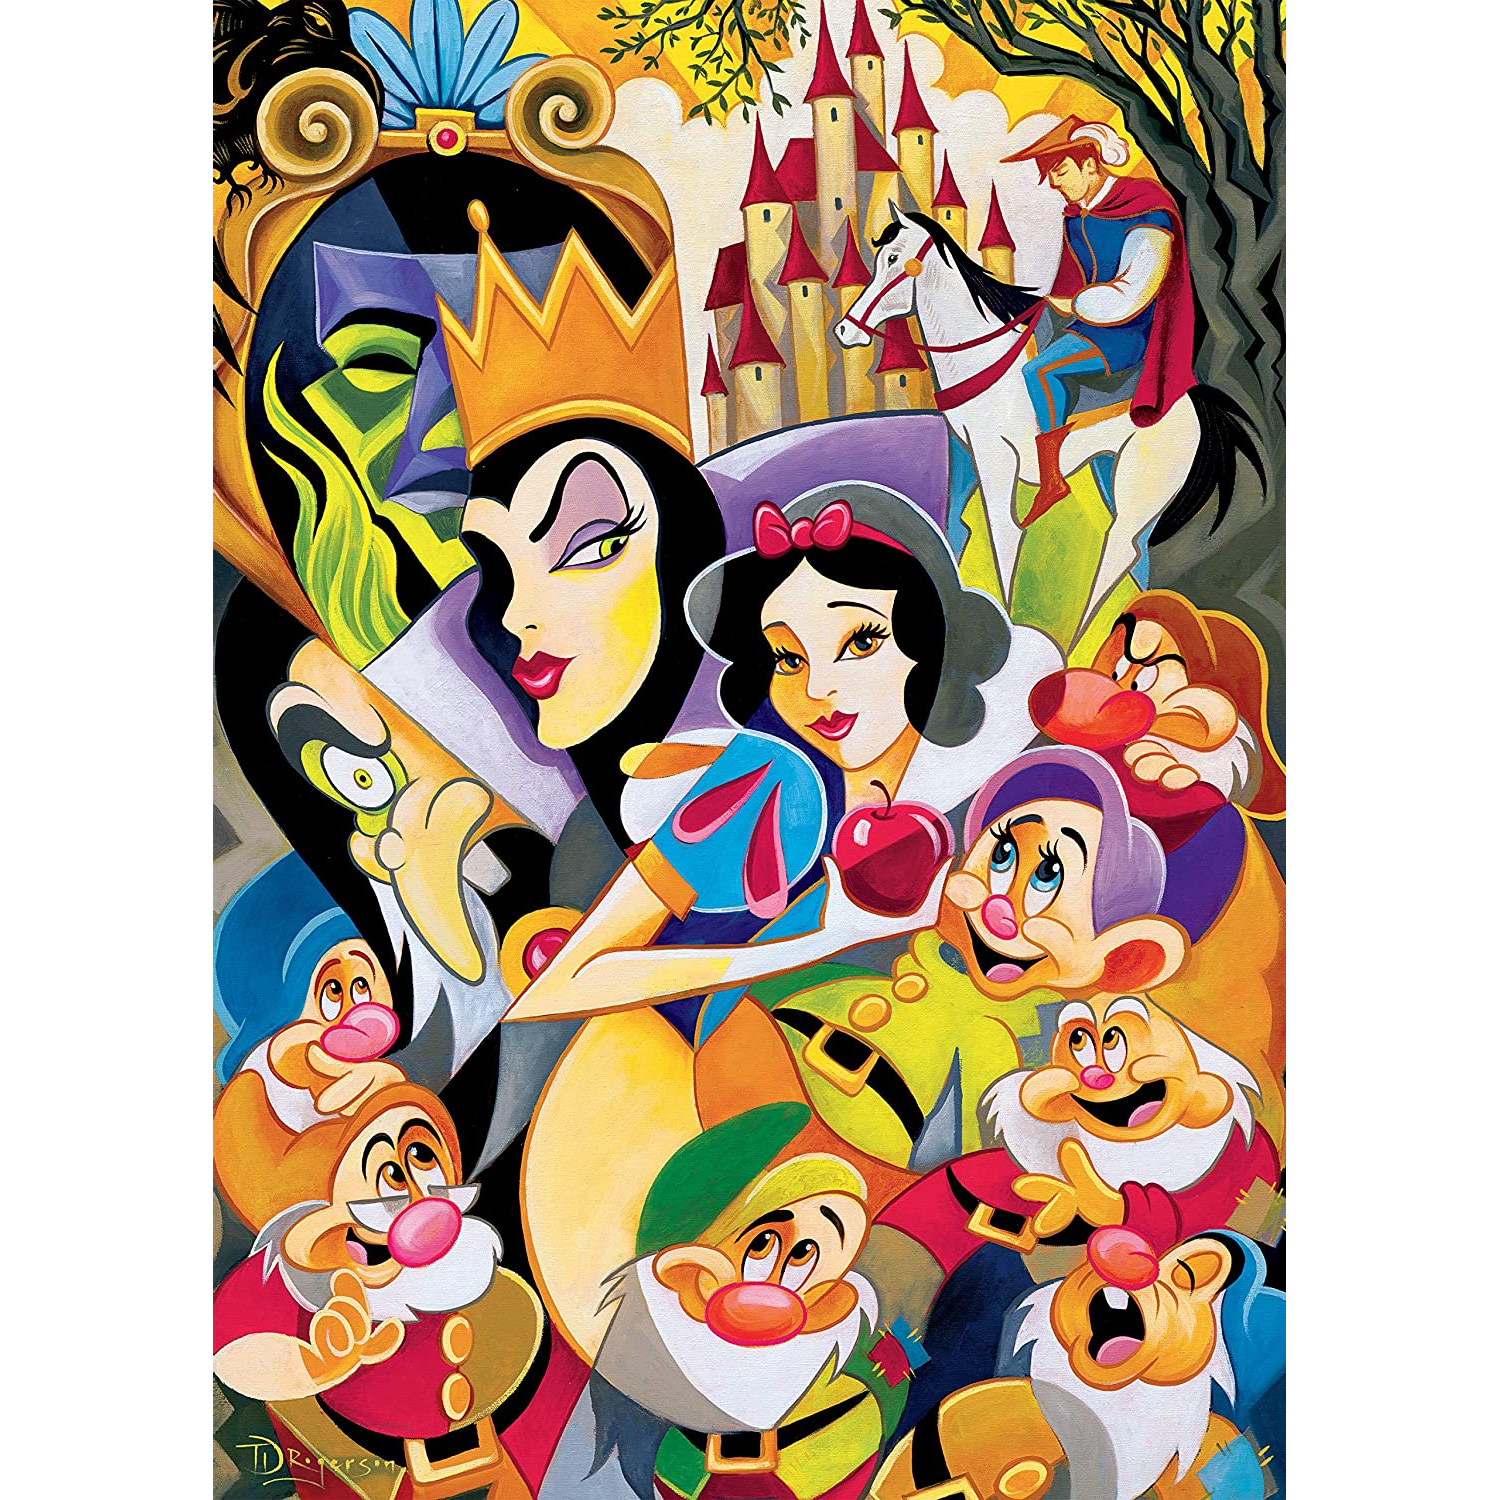 Disney Fine Art - Enchantment of Snow White Puzzle - 1000 Pieces